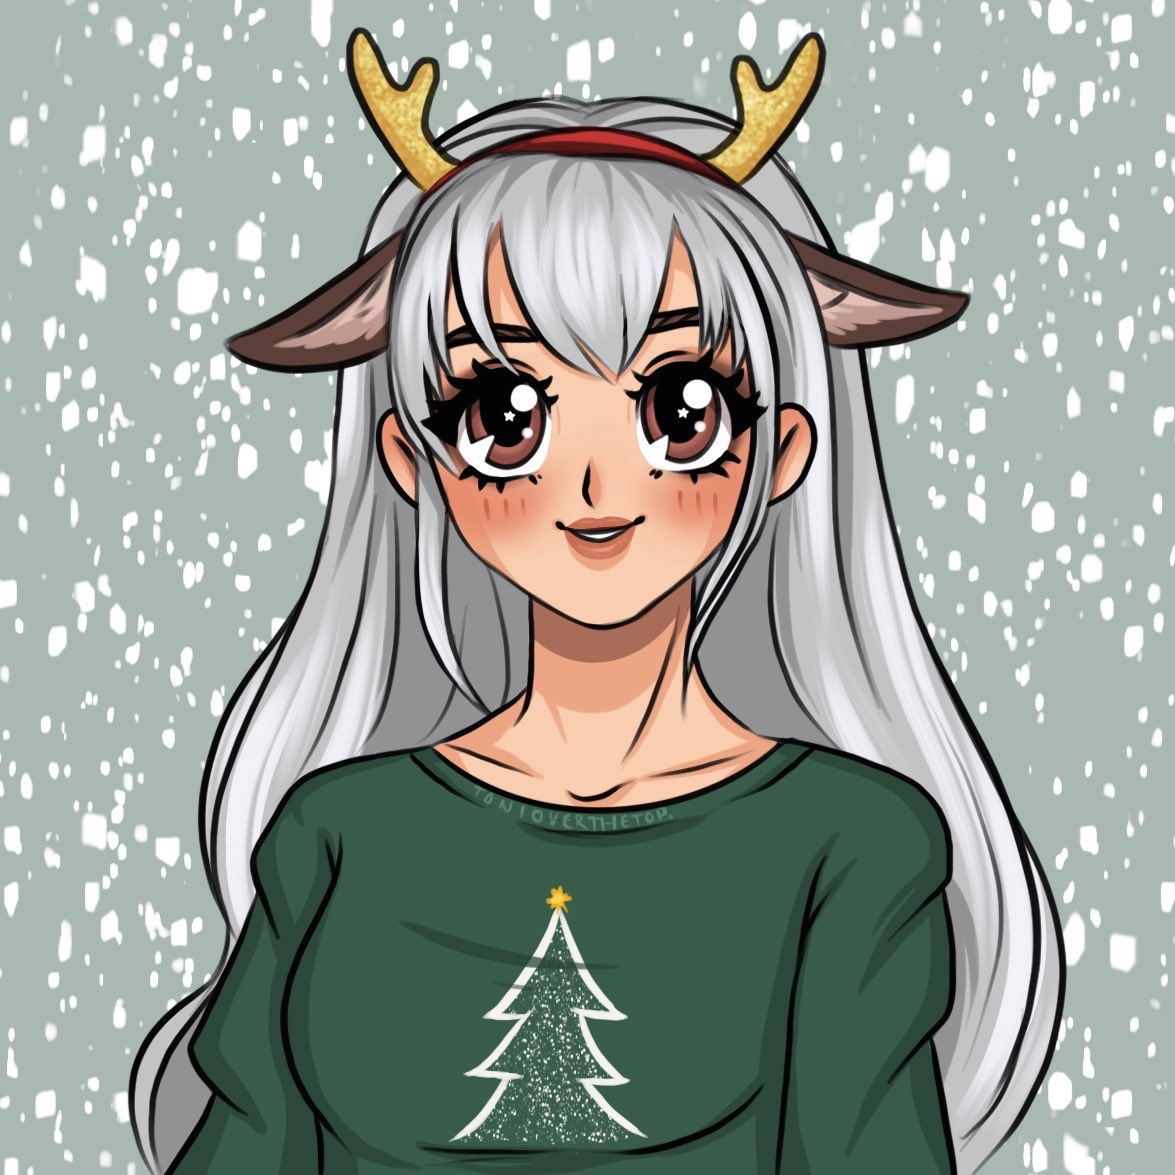 Shm0oo - THANK YOU TO @Tonioverthetop FOR MY BEAUTIFUL CHRISTMAS PFP! I can't wait to be pulling Santa's Sled all night long 🦌🎅🏼